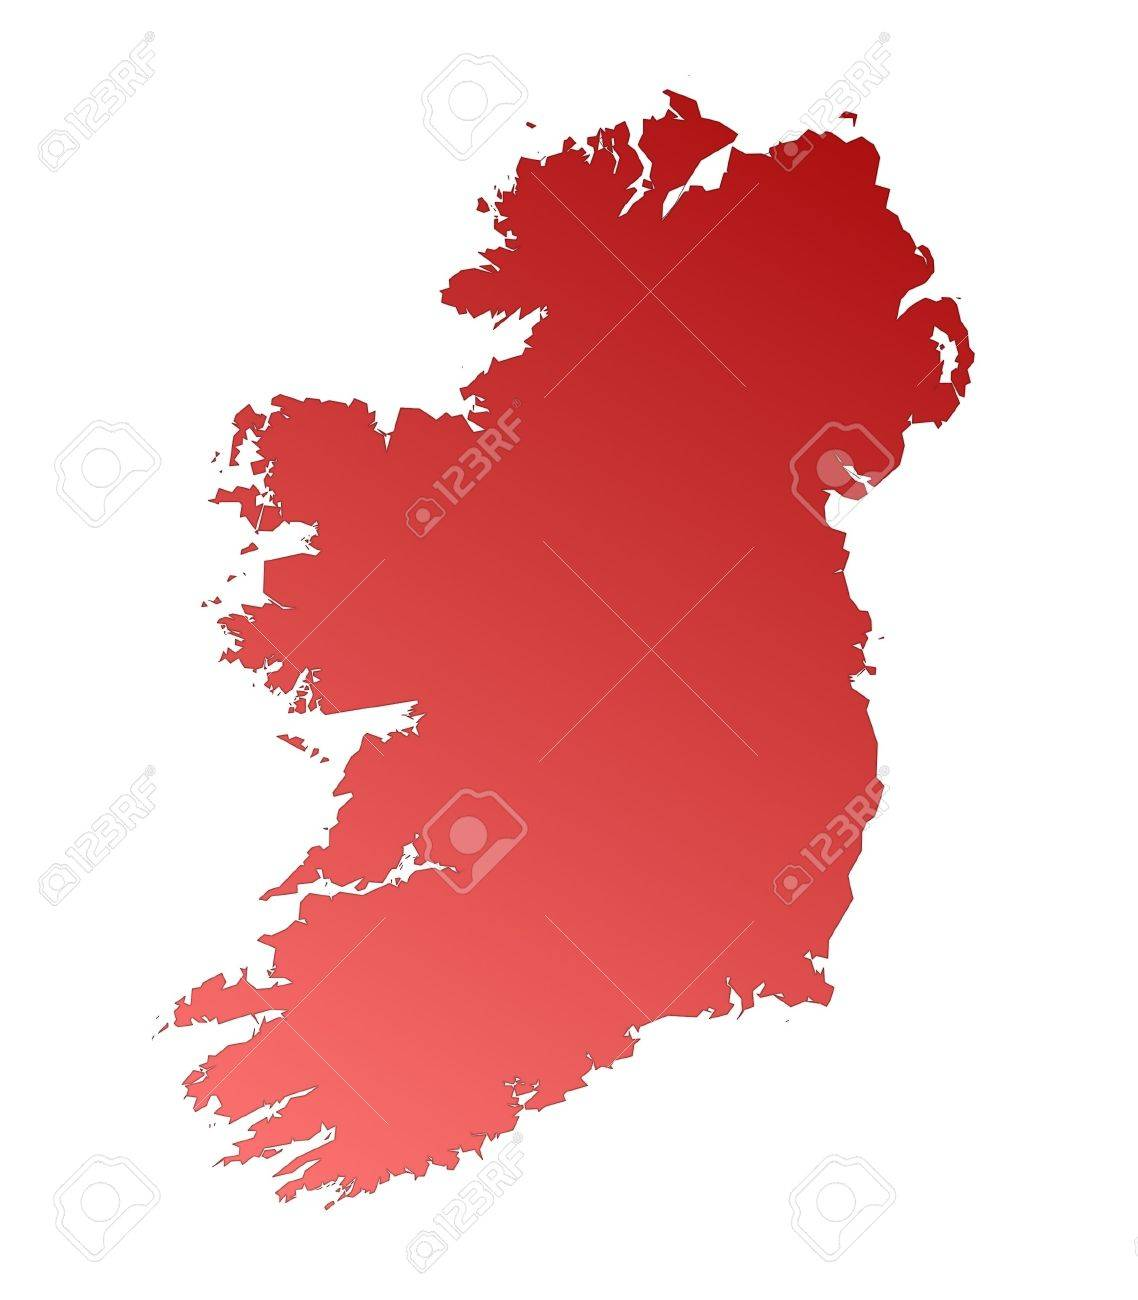 isolated red gradient map of ireland stock photo picture and